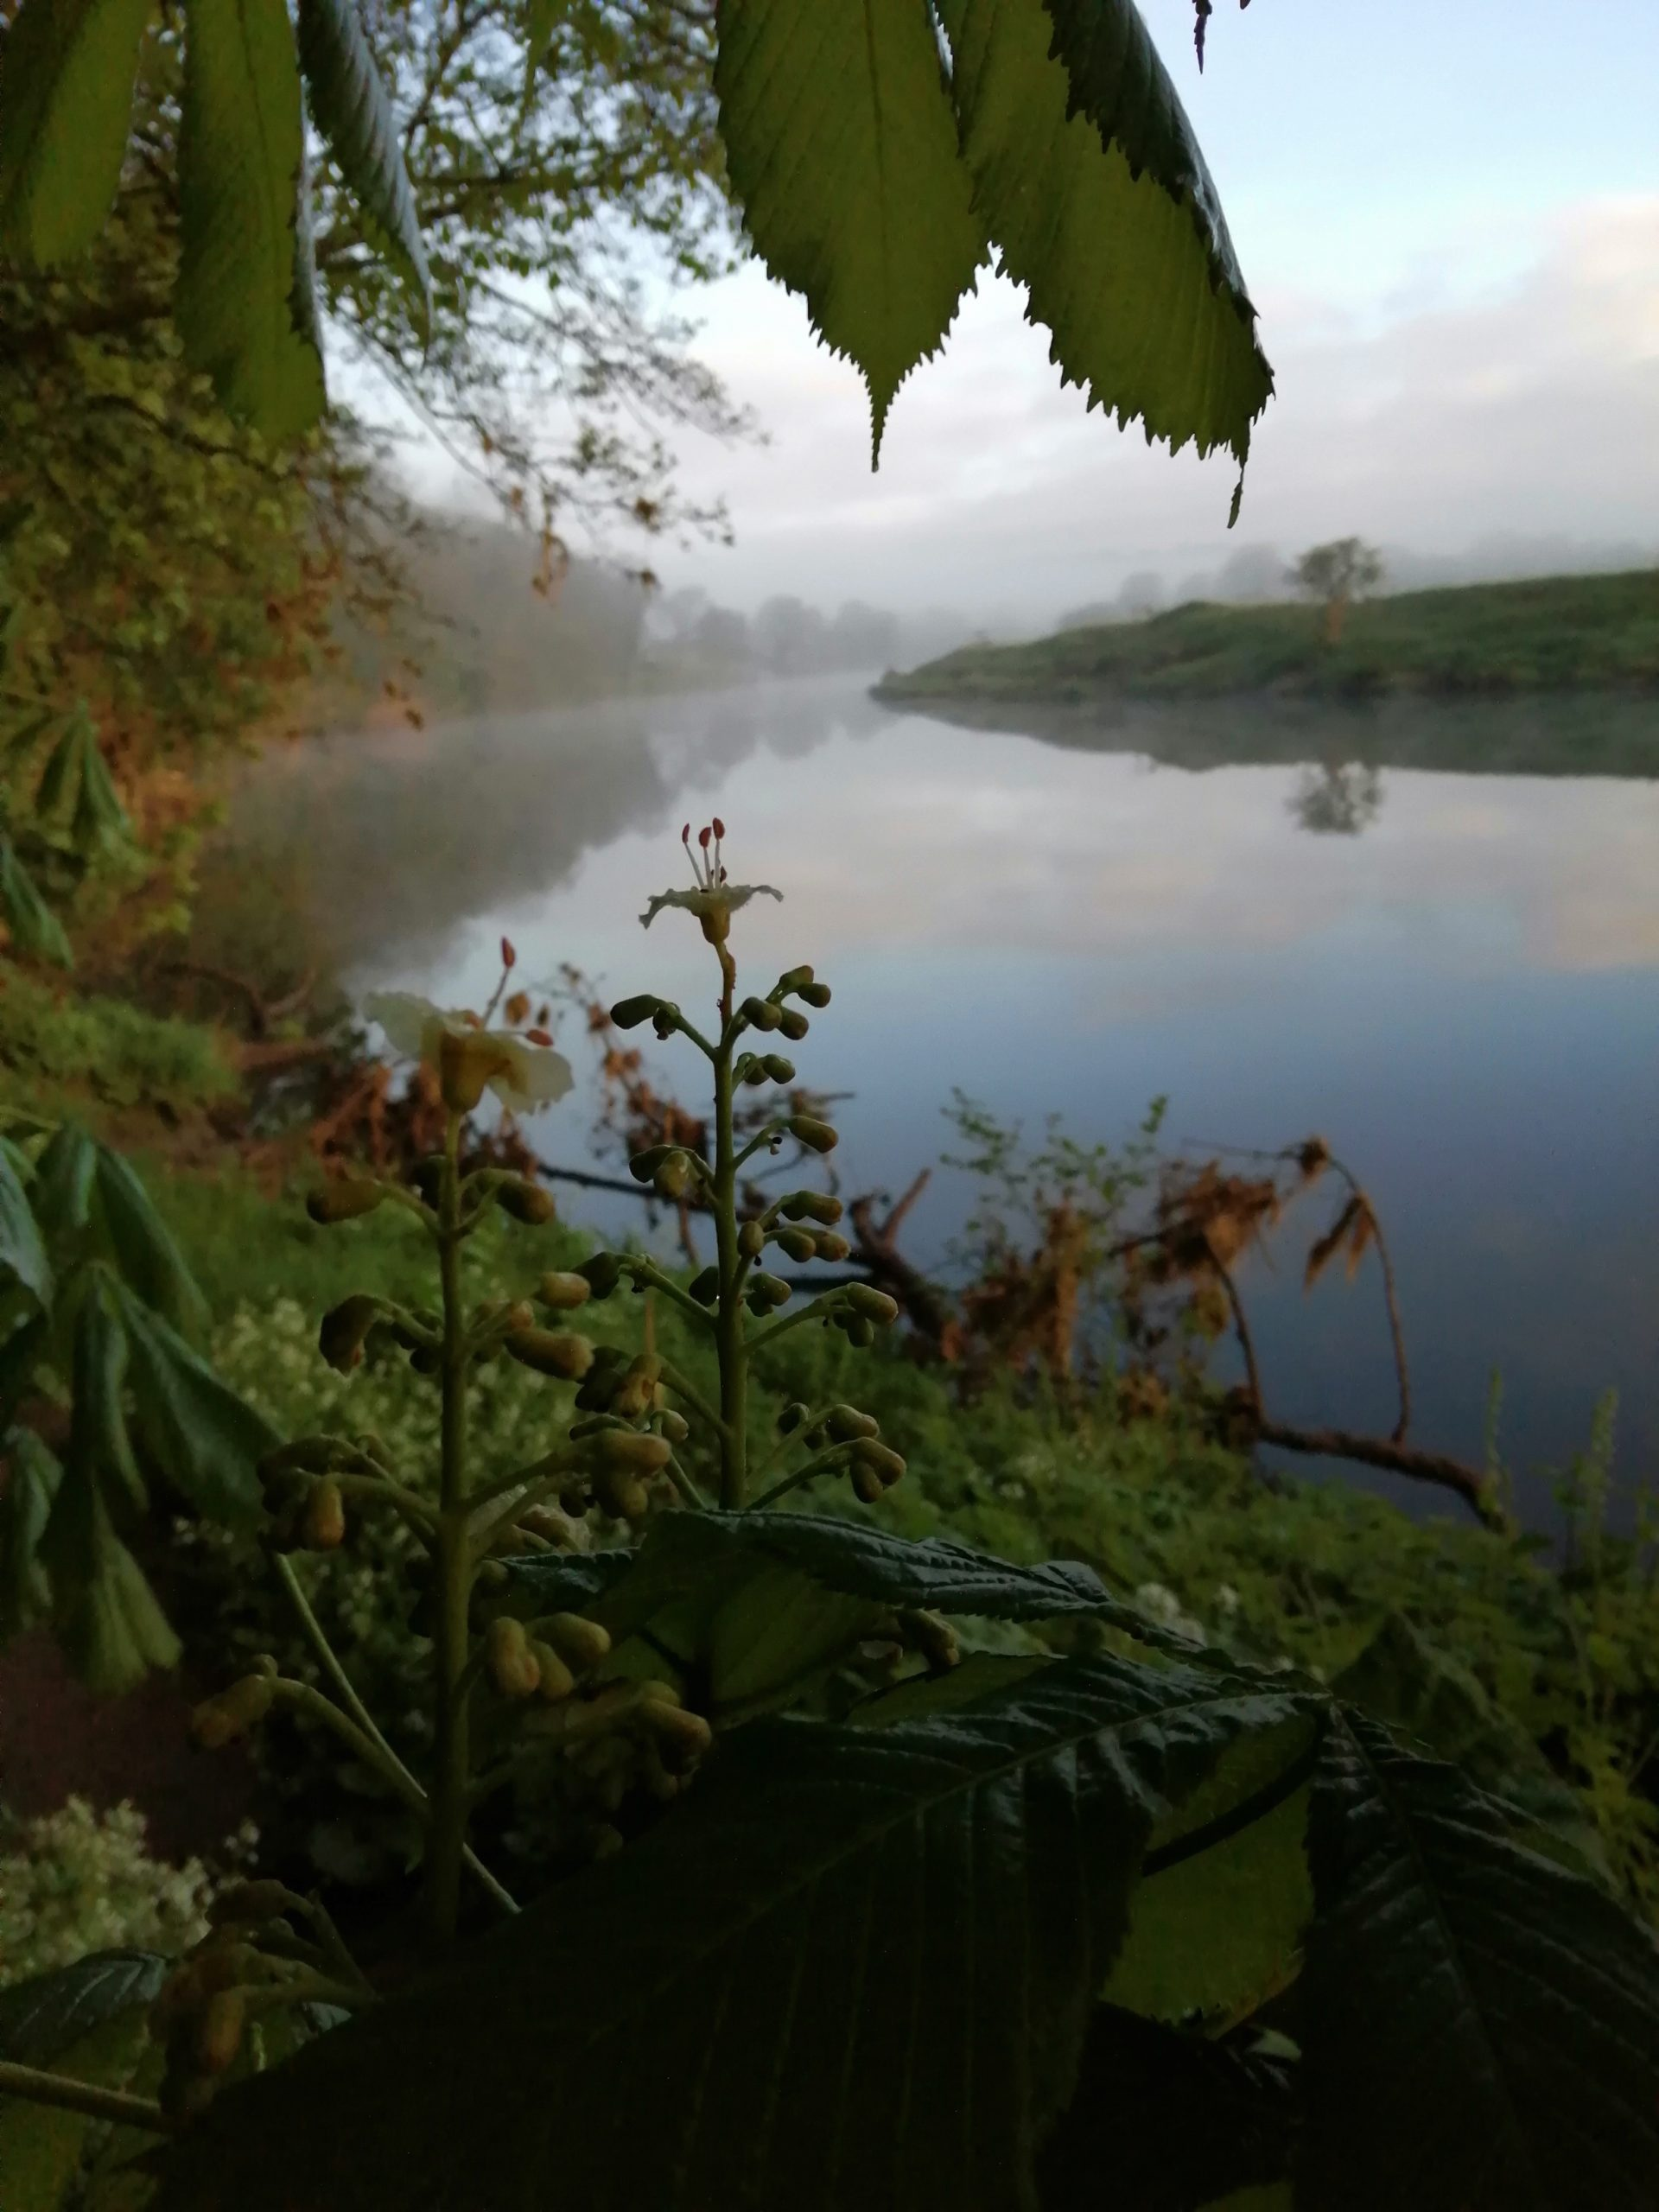 View across the river Ribble at Belisama's Retreat